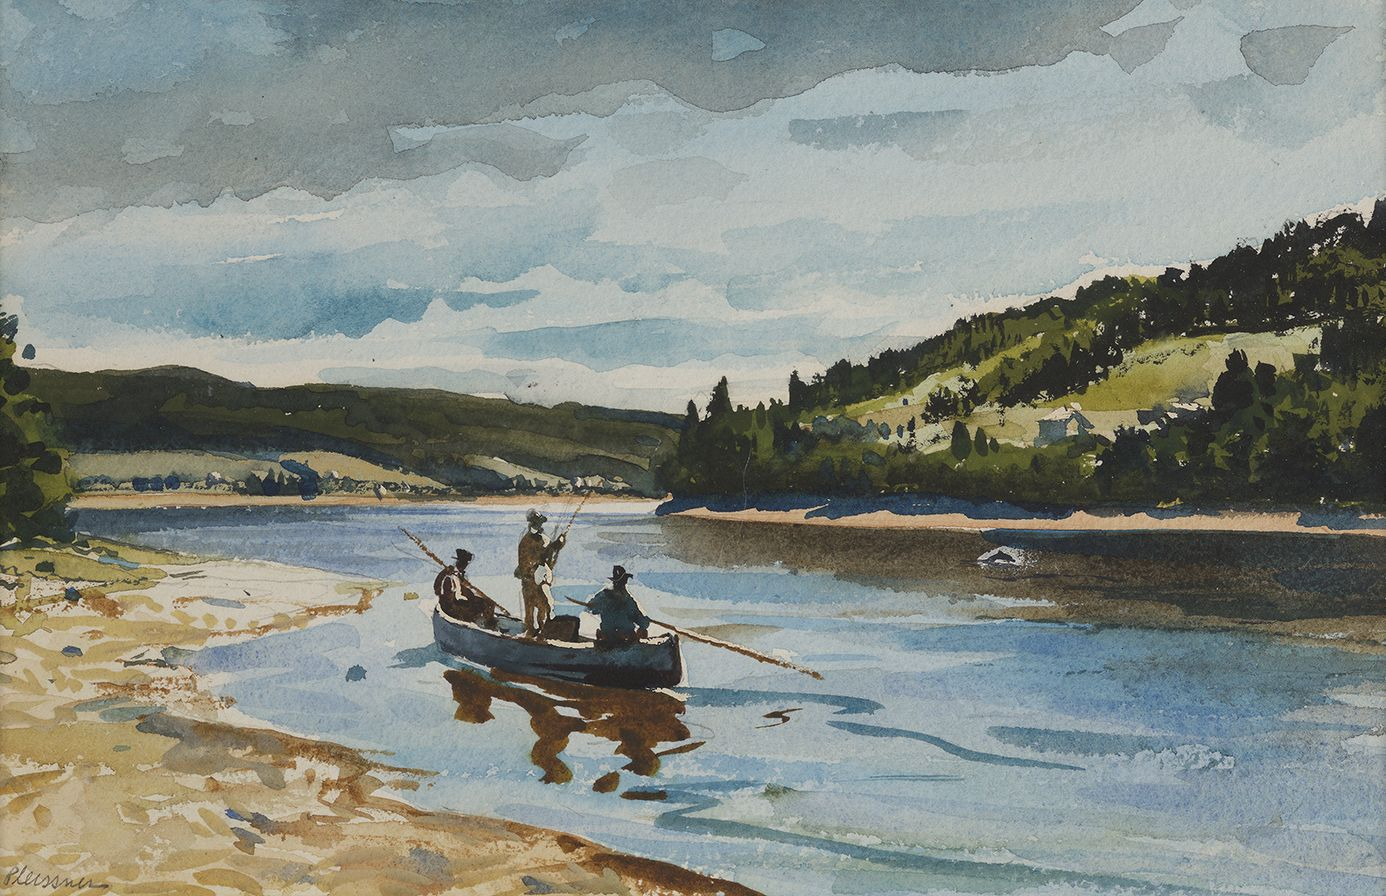 Ogden Minton Pleissner (1905-1983), Salmon Fishing on the Restigouche